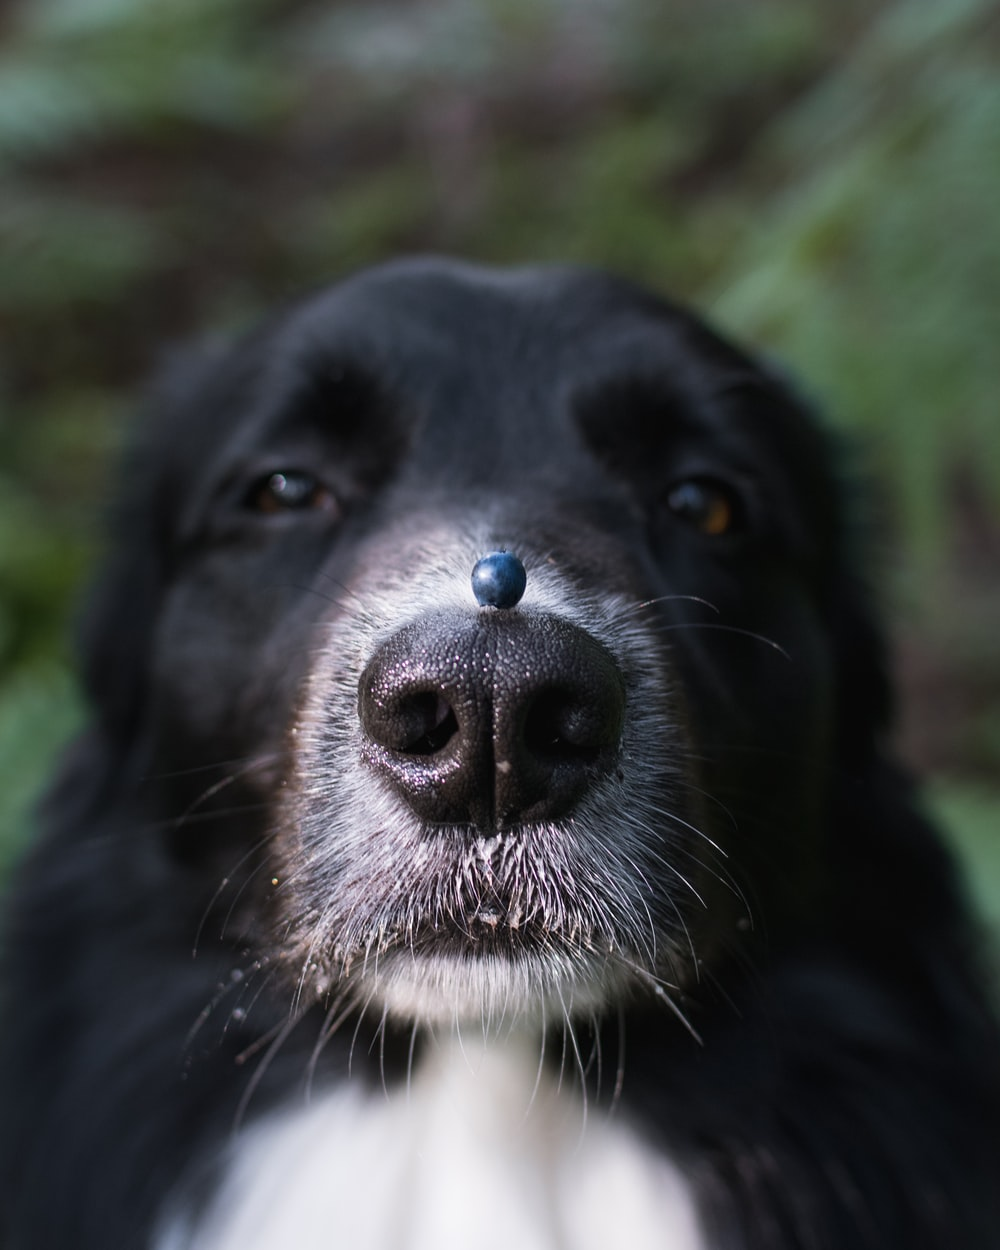 blue berry on dog's nose